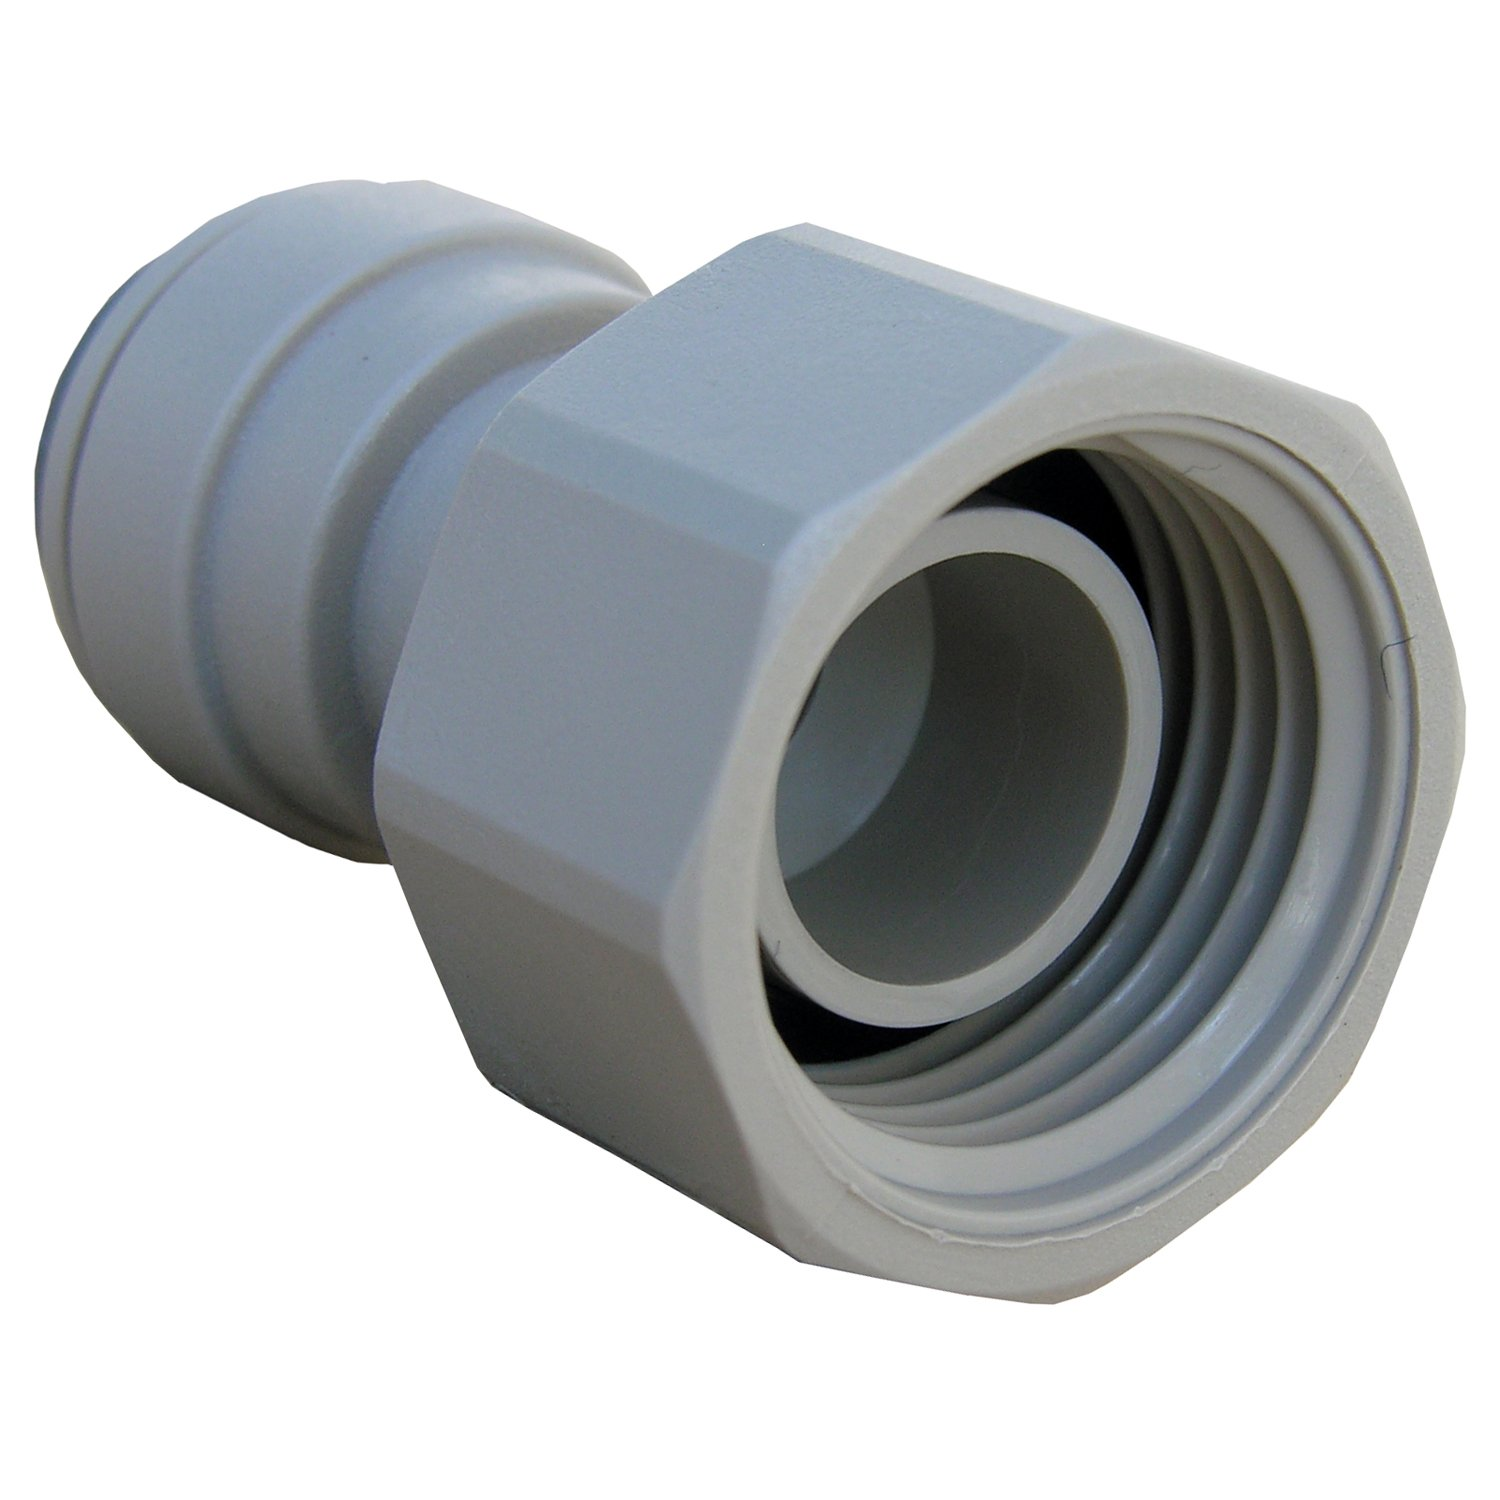 LASCO 19-6193 Female Pipe Thread Adapter Push-In Fitting with 3//8-Inch OD Tube and 1//2-Inch Plastic